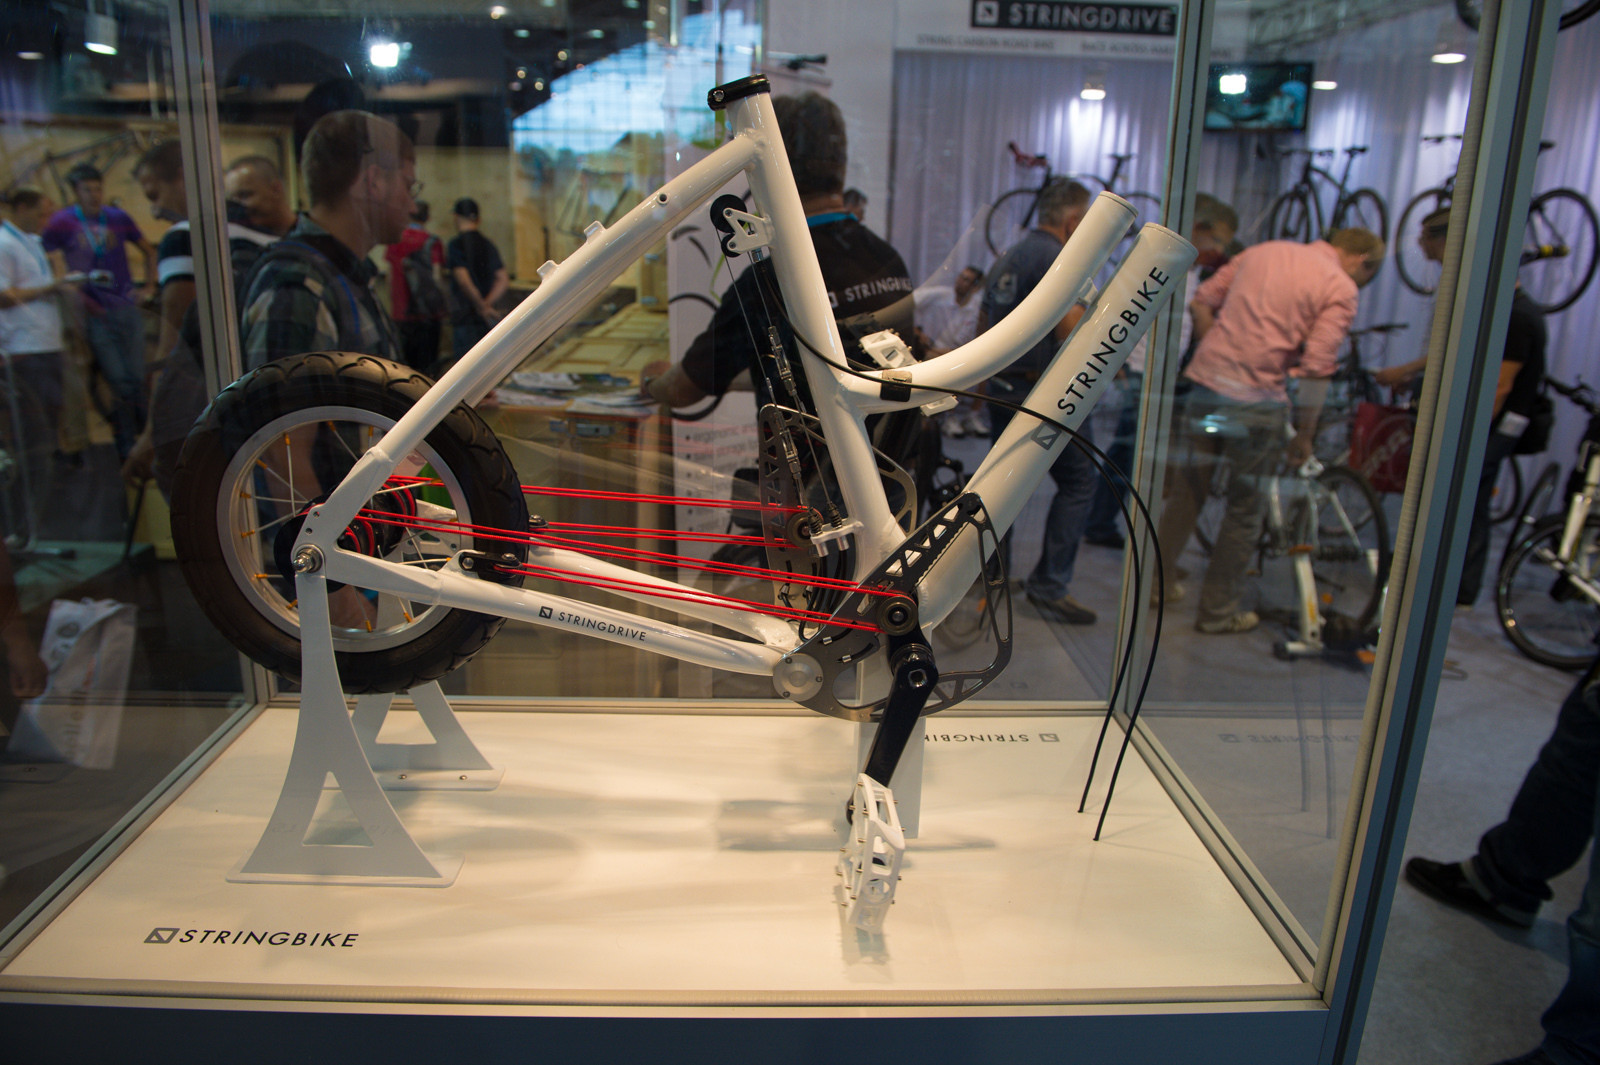 Stringdrive - Randoms at Eurobike 2013 - Mountain Biking Pictures - Vital MTB